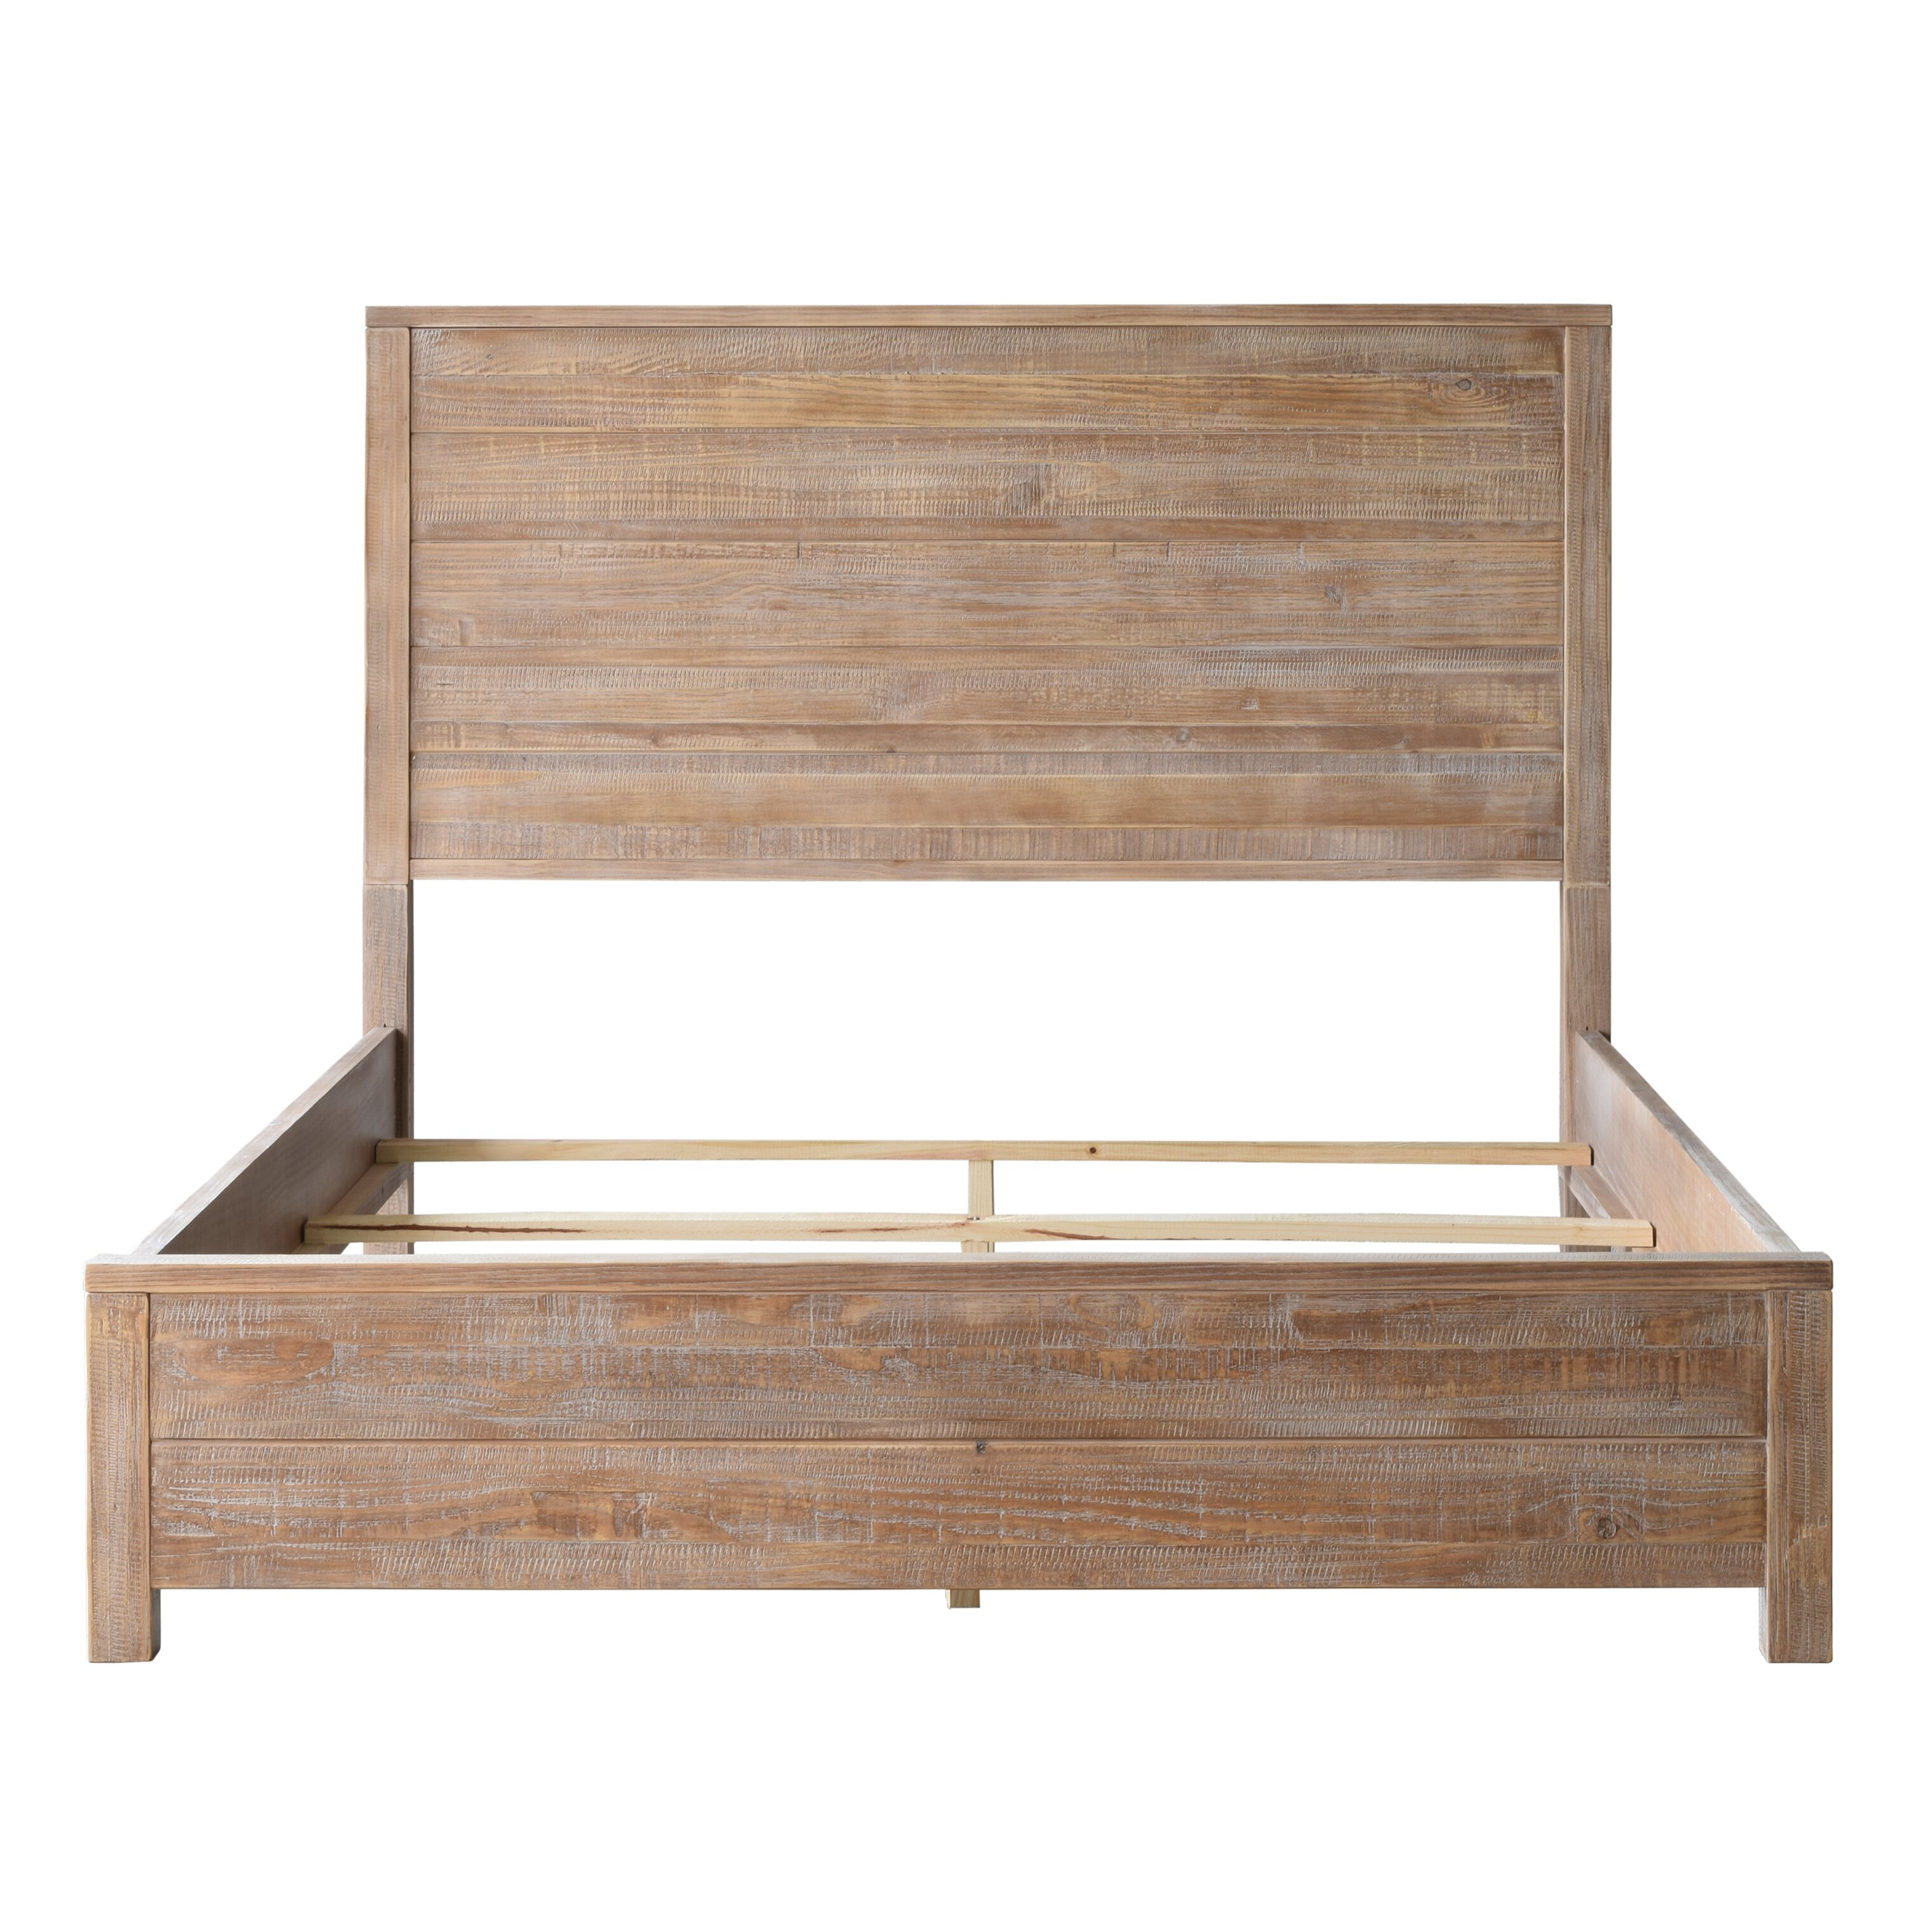 Very Impressive portraiture of Grain Wood Furniture Montauk Panel Bed & Reviews Wayfair with #866645 color and 3039x3039 pixels